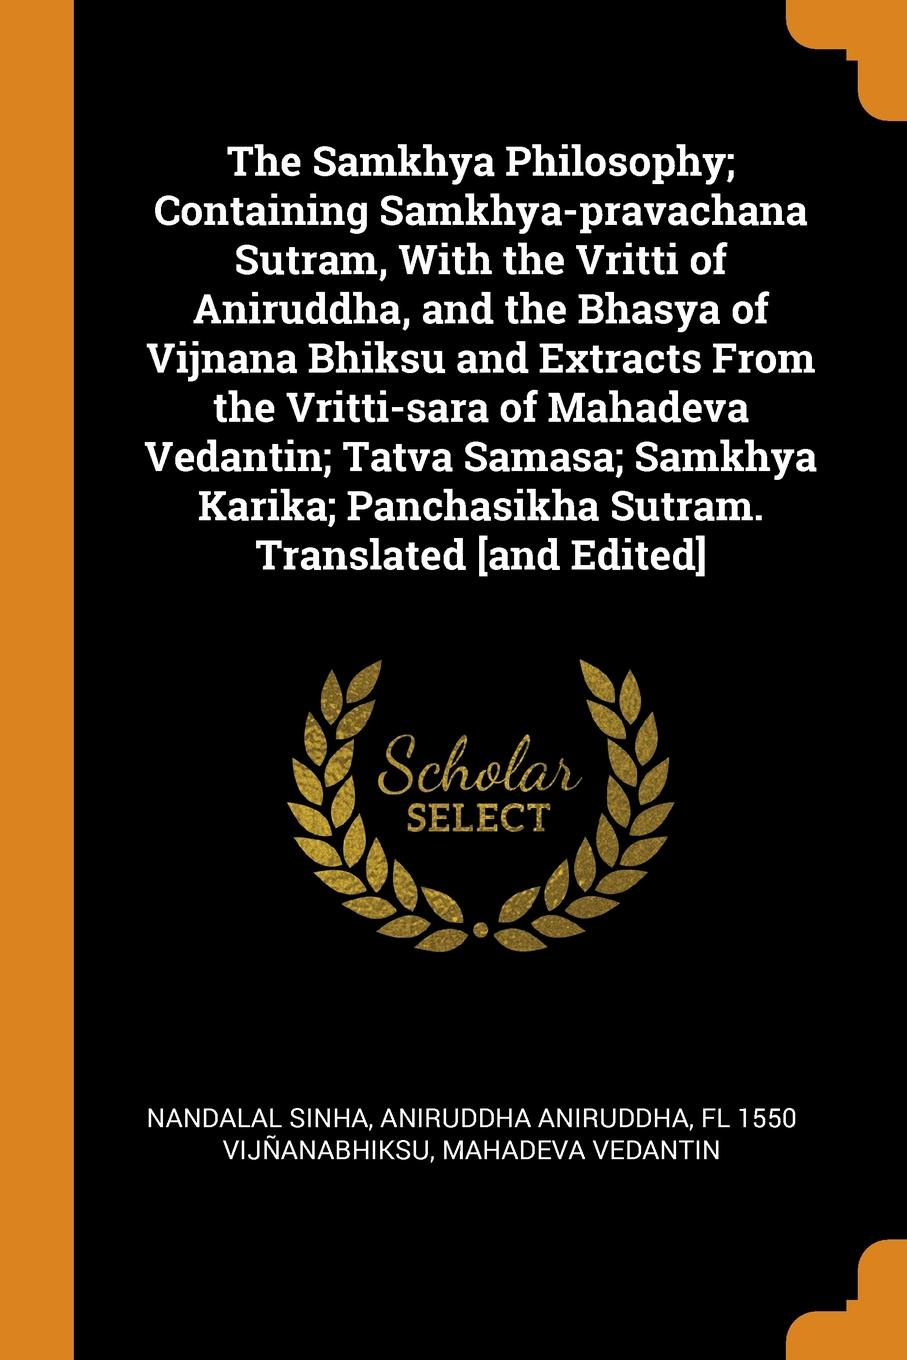 Nandalal Sinha, Aniruddha Aniruddha, fl 1550 Vijñanabhiksu The Samkhya Philosophy; Containing Samkhya-pravachana Sutram, With the Vritti of Aniruddha, and the Bhasya of Vijnana Bhiksu and Extracts From the Vritti-sara of Mahadeva Vedantin; Tatva Samasa; Samkhya Karika; Panchasikha Sutram. Translated .and ... samkhya philosophy a generic view